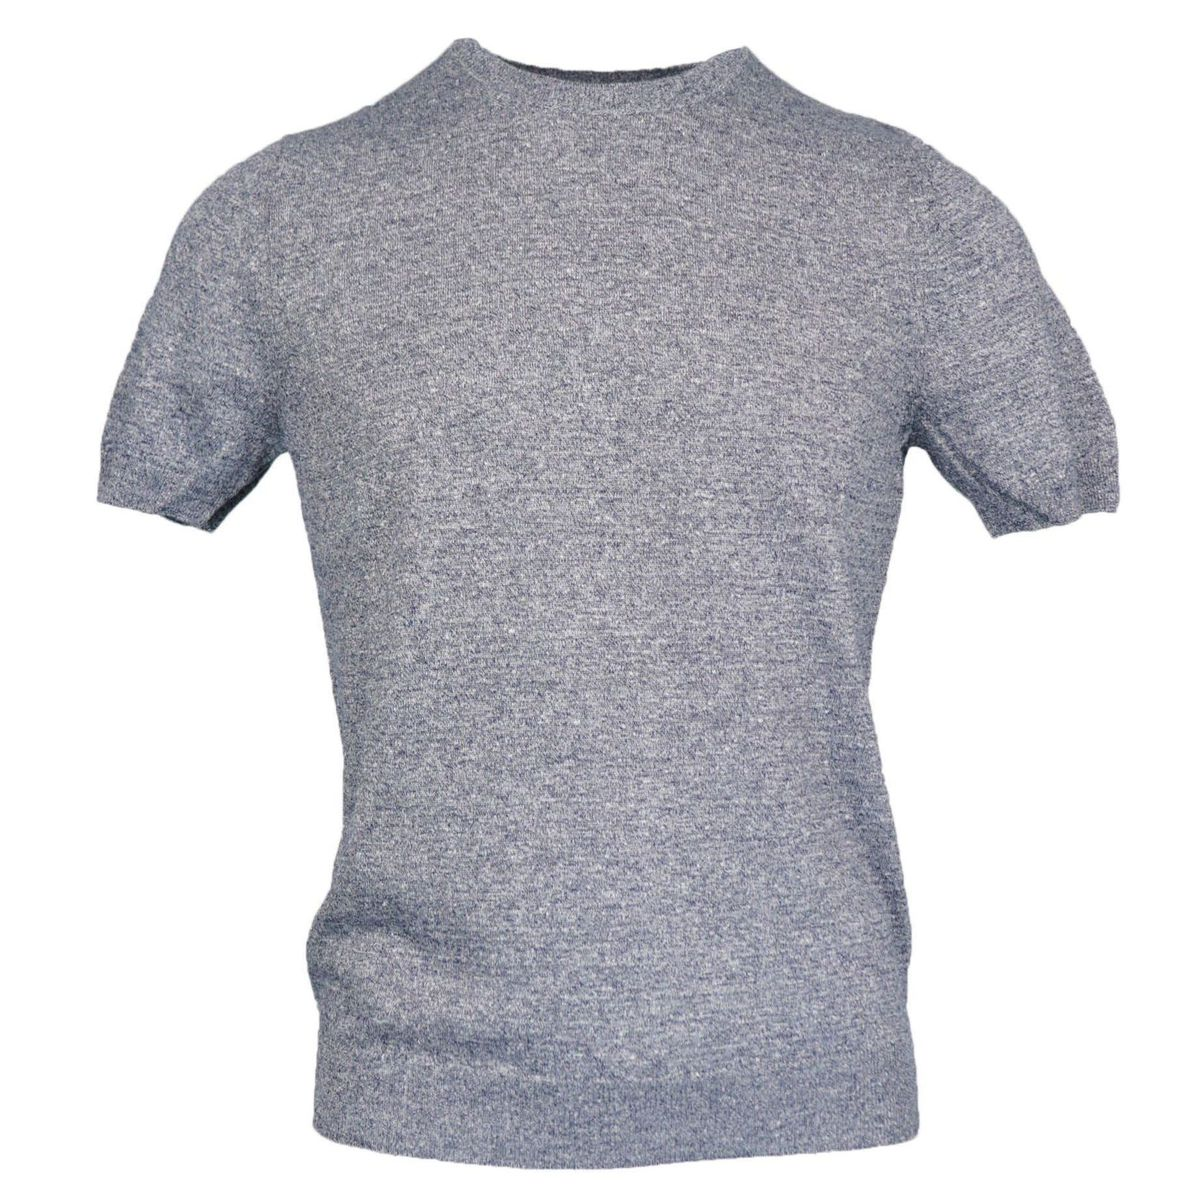 Cotton half-sleeved crew neck sweater with ribbed profiles Light grey Gran Sasso